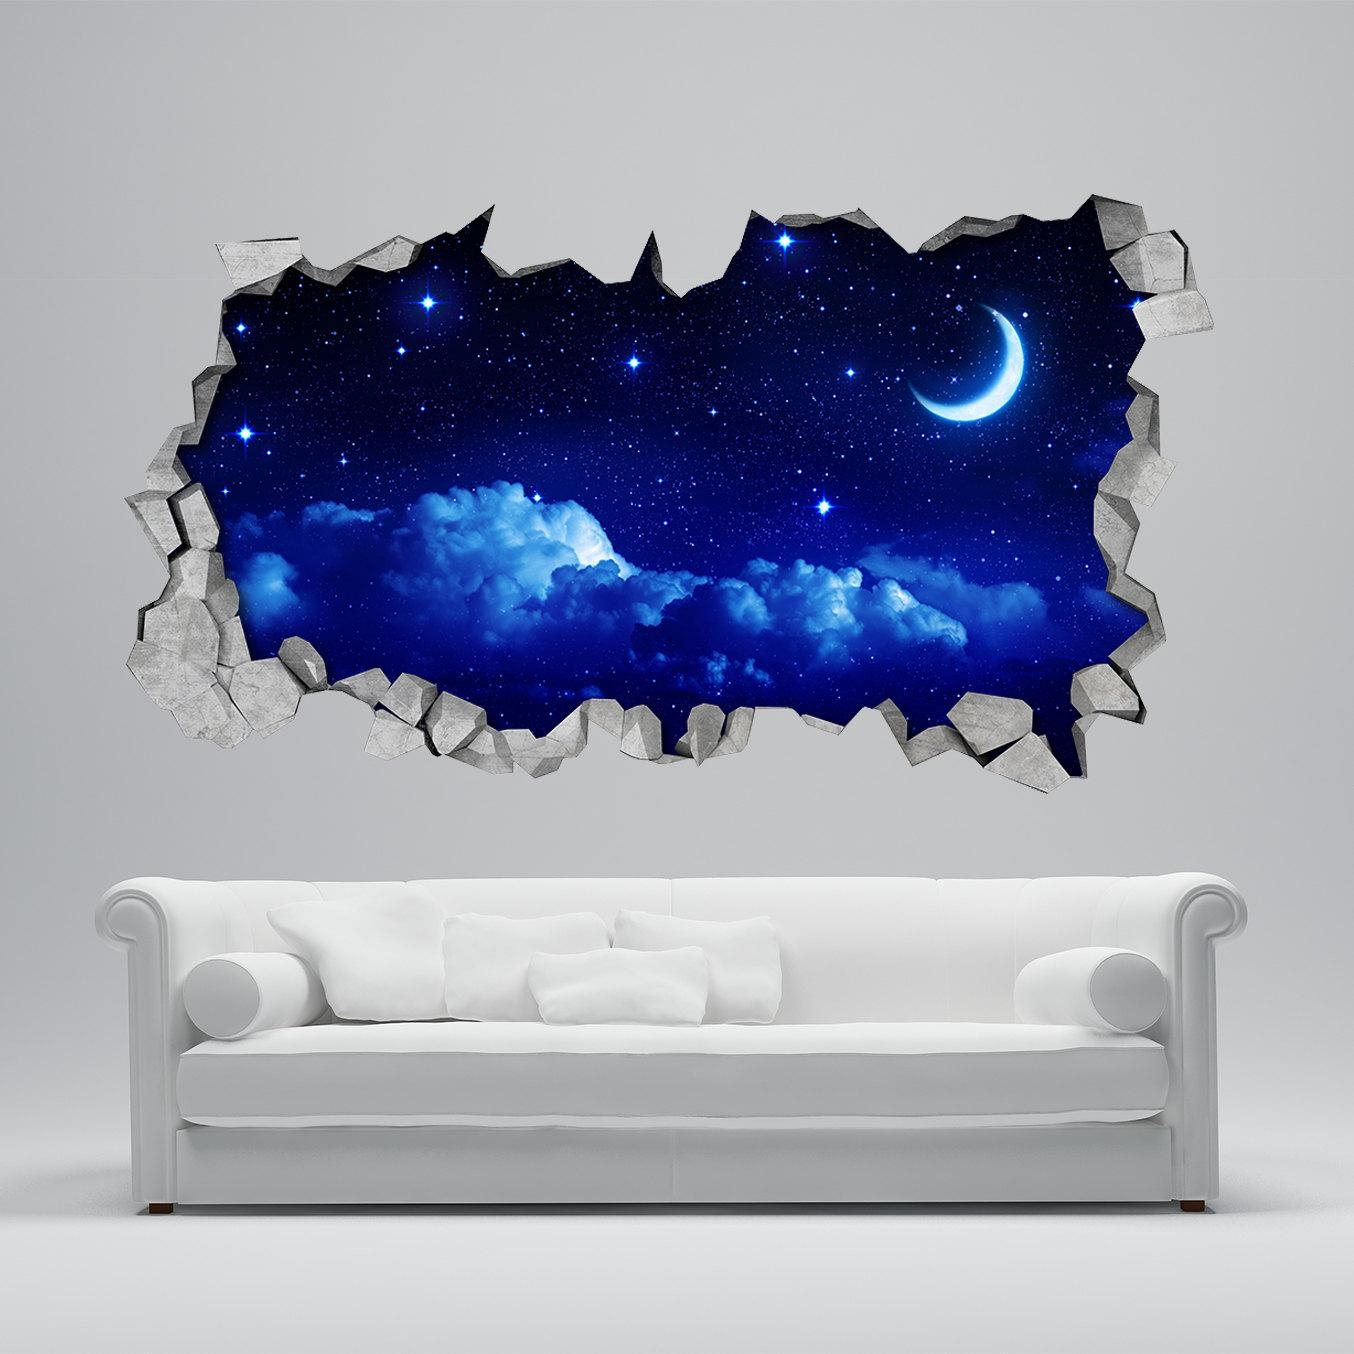 Moon Wall Sticker 3D Broken Wall Decal 3D Wallpaper Wall Pertaining To 3D Printed Wall Art (View 13 of 20)